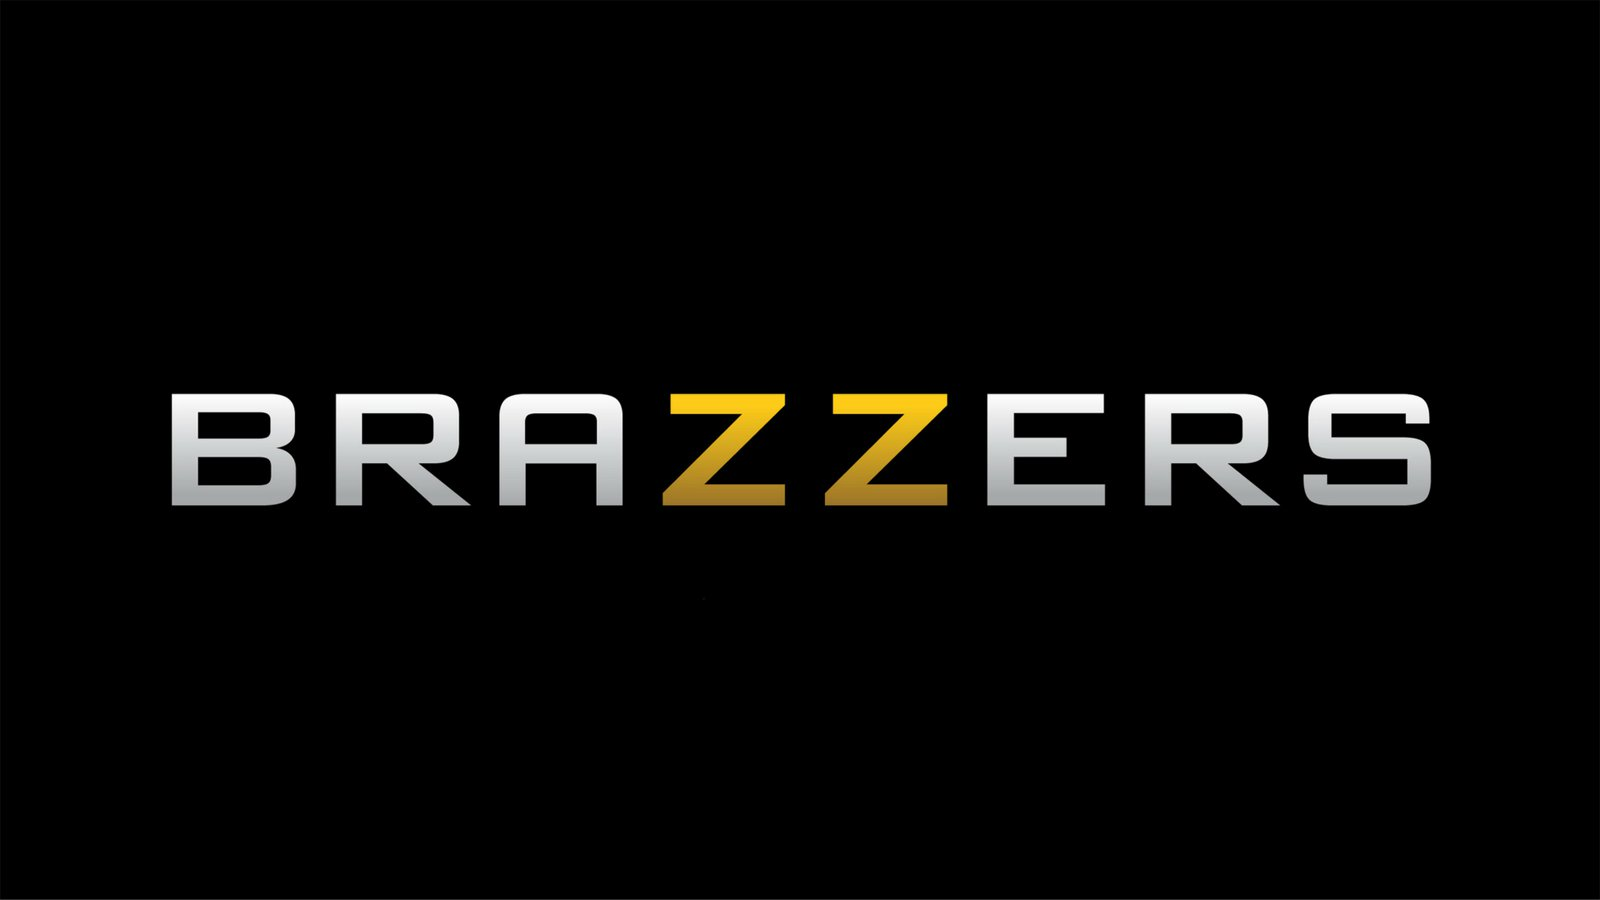 the brazzers